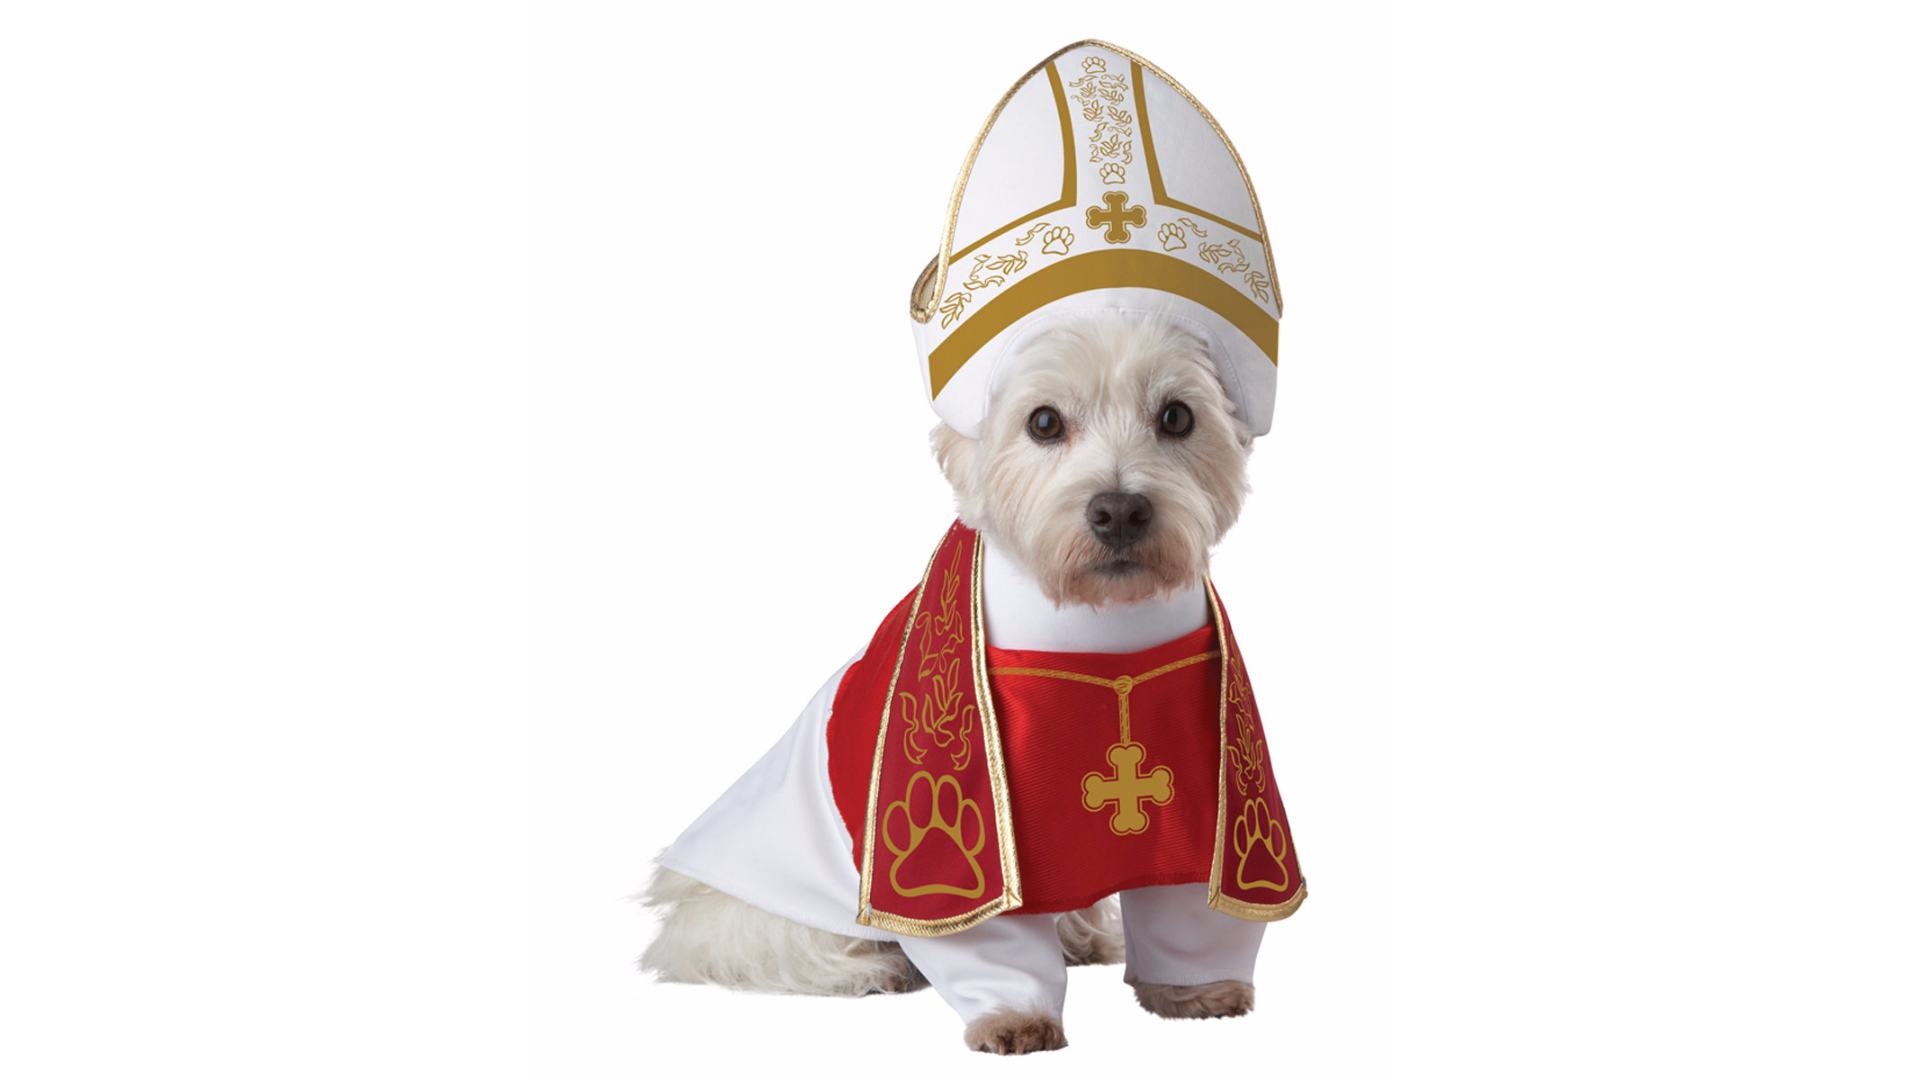 This most divinecostume for a very good boy